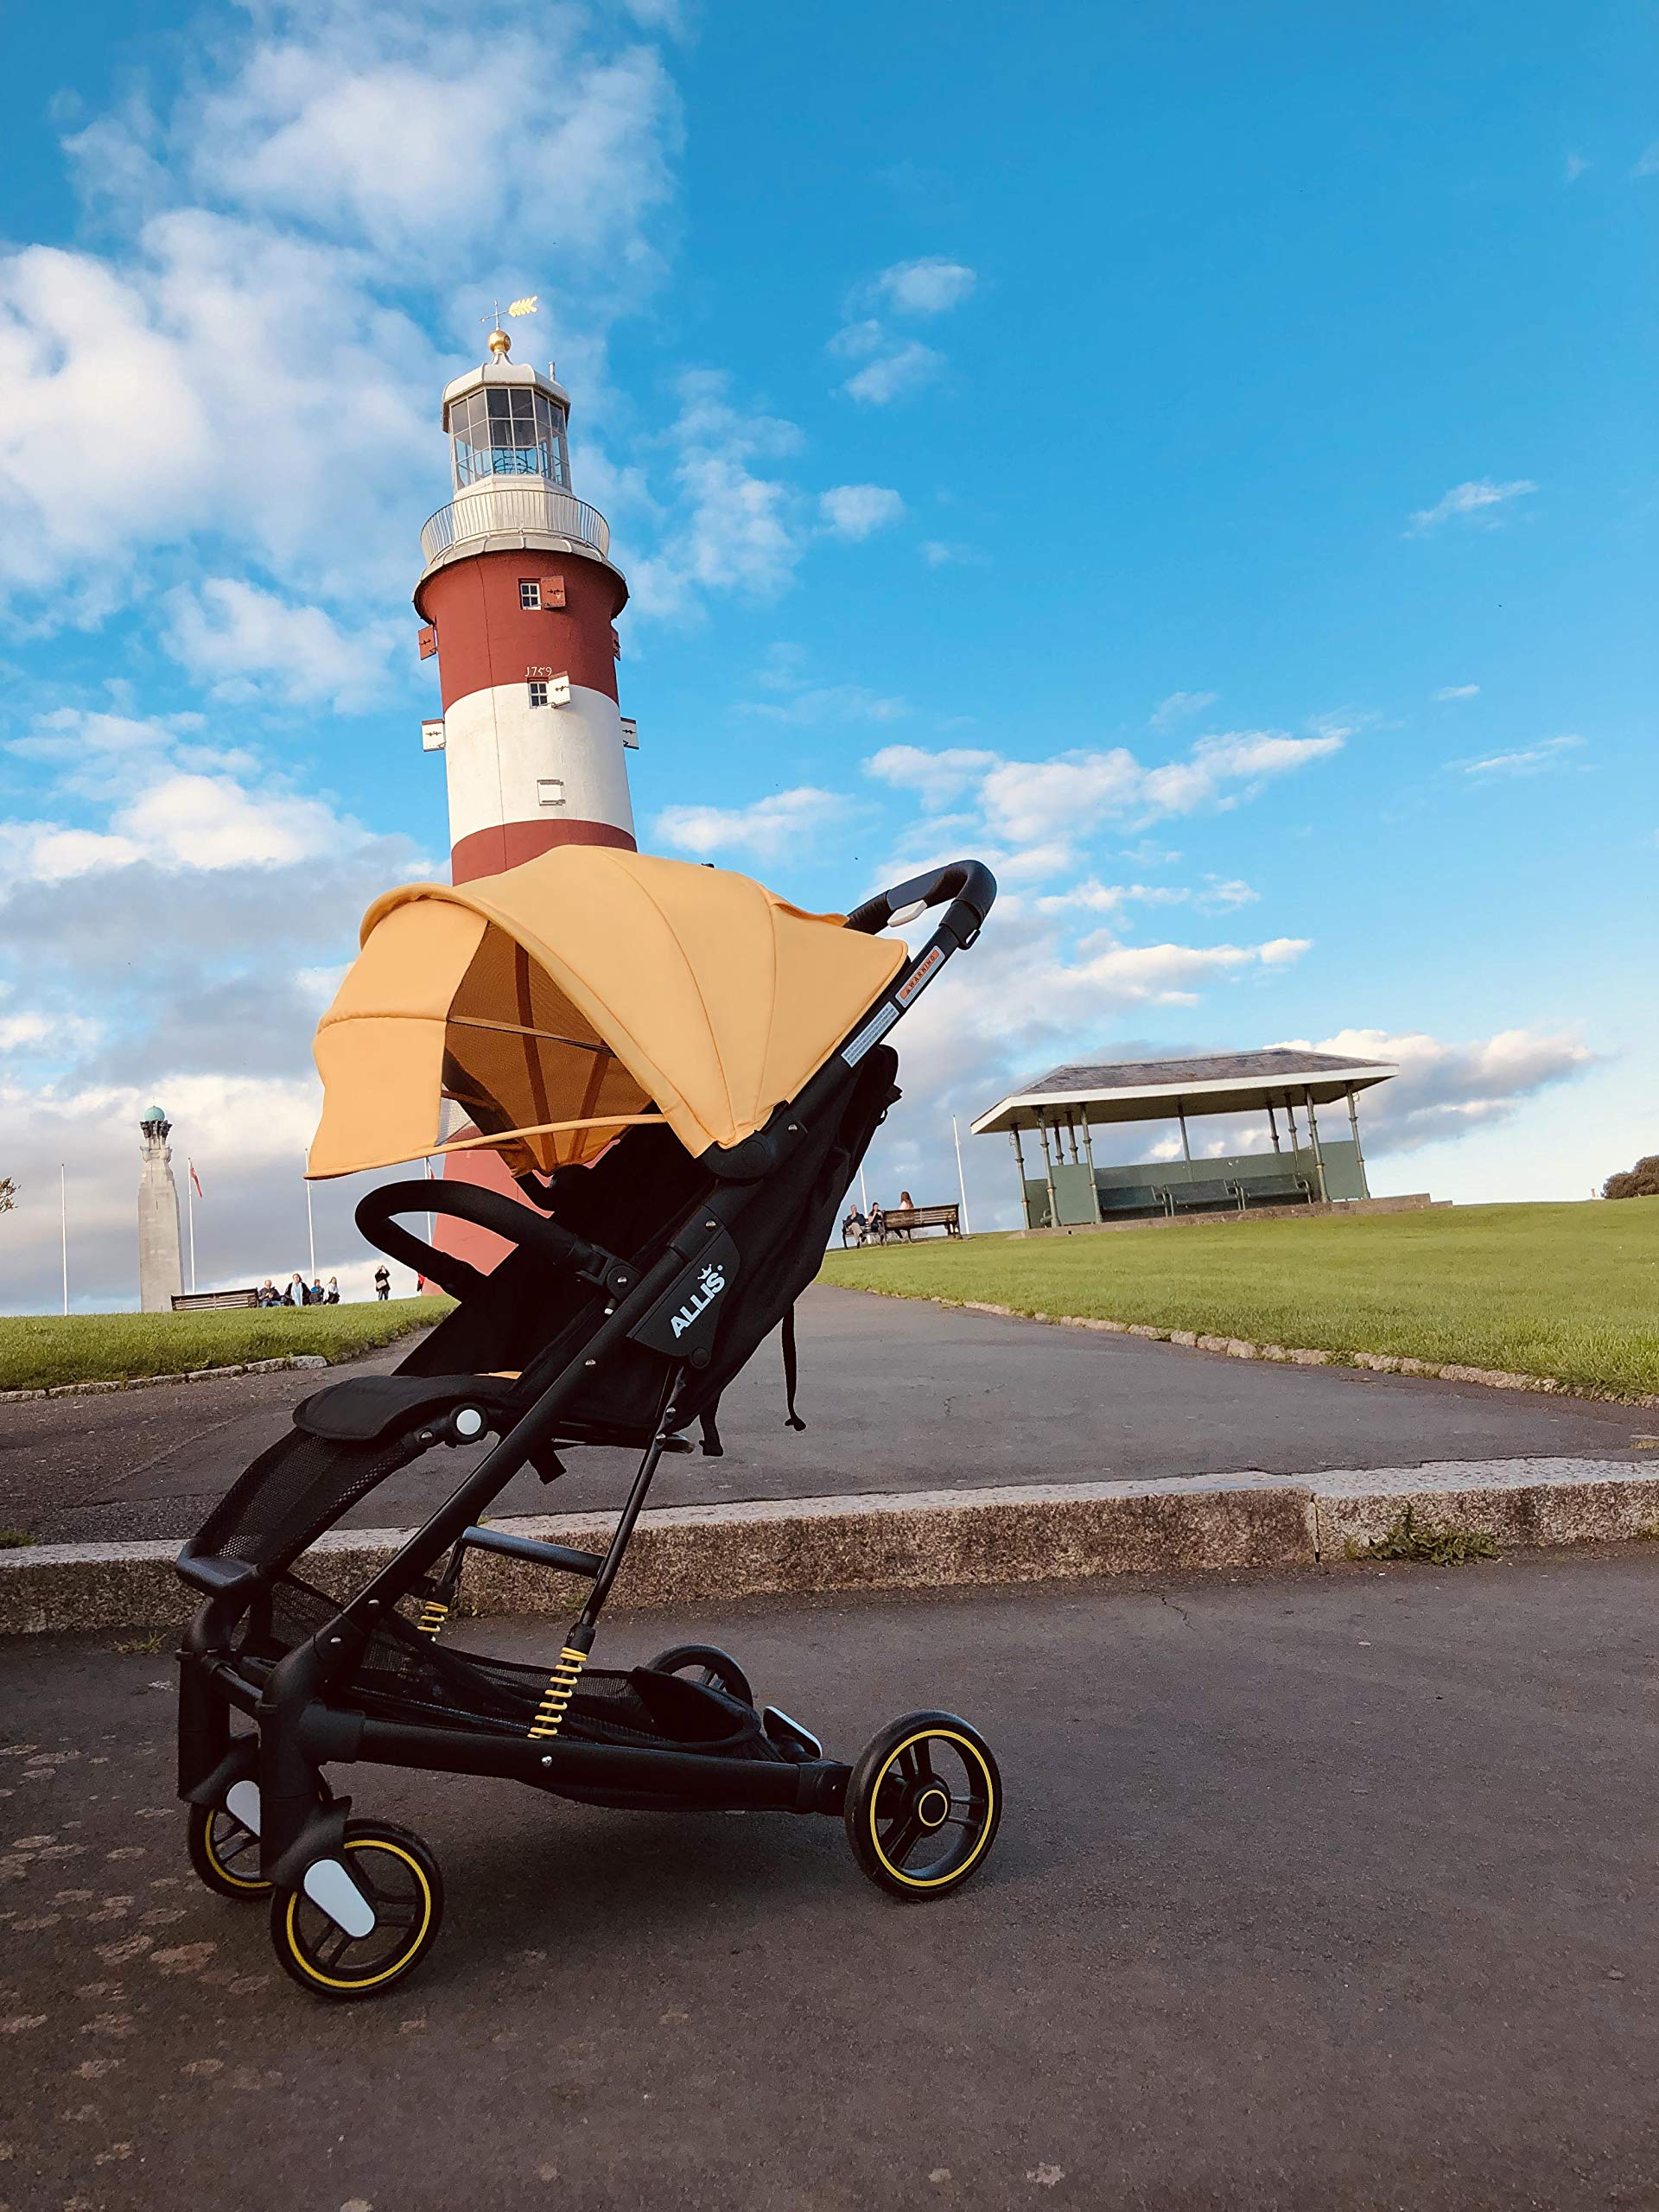 Allis Travel Stroller Baby Buggy Pram Lightweight Pushchair - Yellow Allis Baby Made according to British Standard EN1888, Fire Safety Regulations 1988. Lockable 360 swivel wheels, removable and suspension. Ultralight Design:Aluminium frame. Suitable from 6M - 4Ys ( upto 15Kg Approx) 3